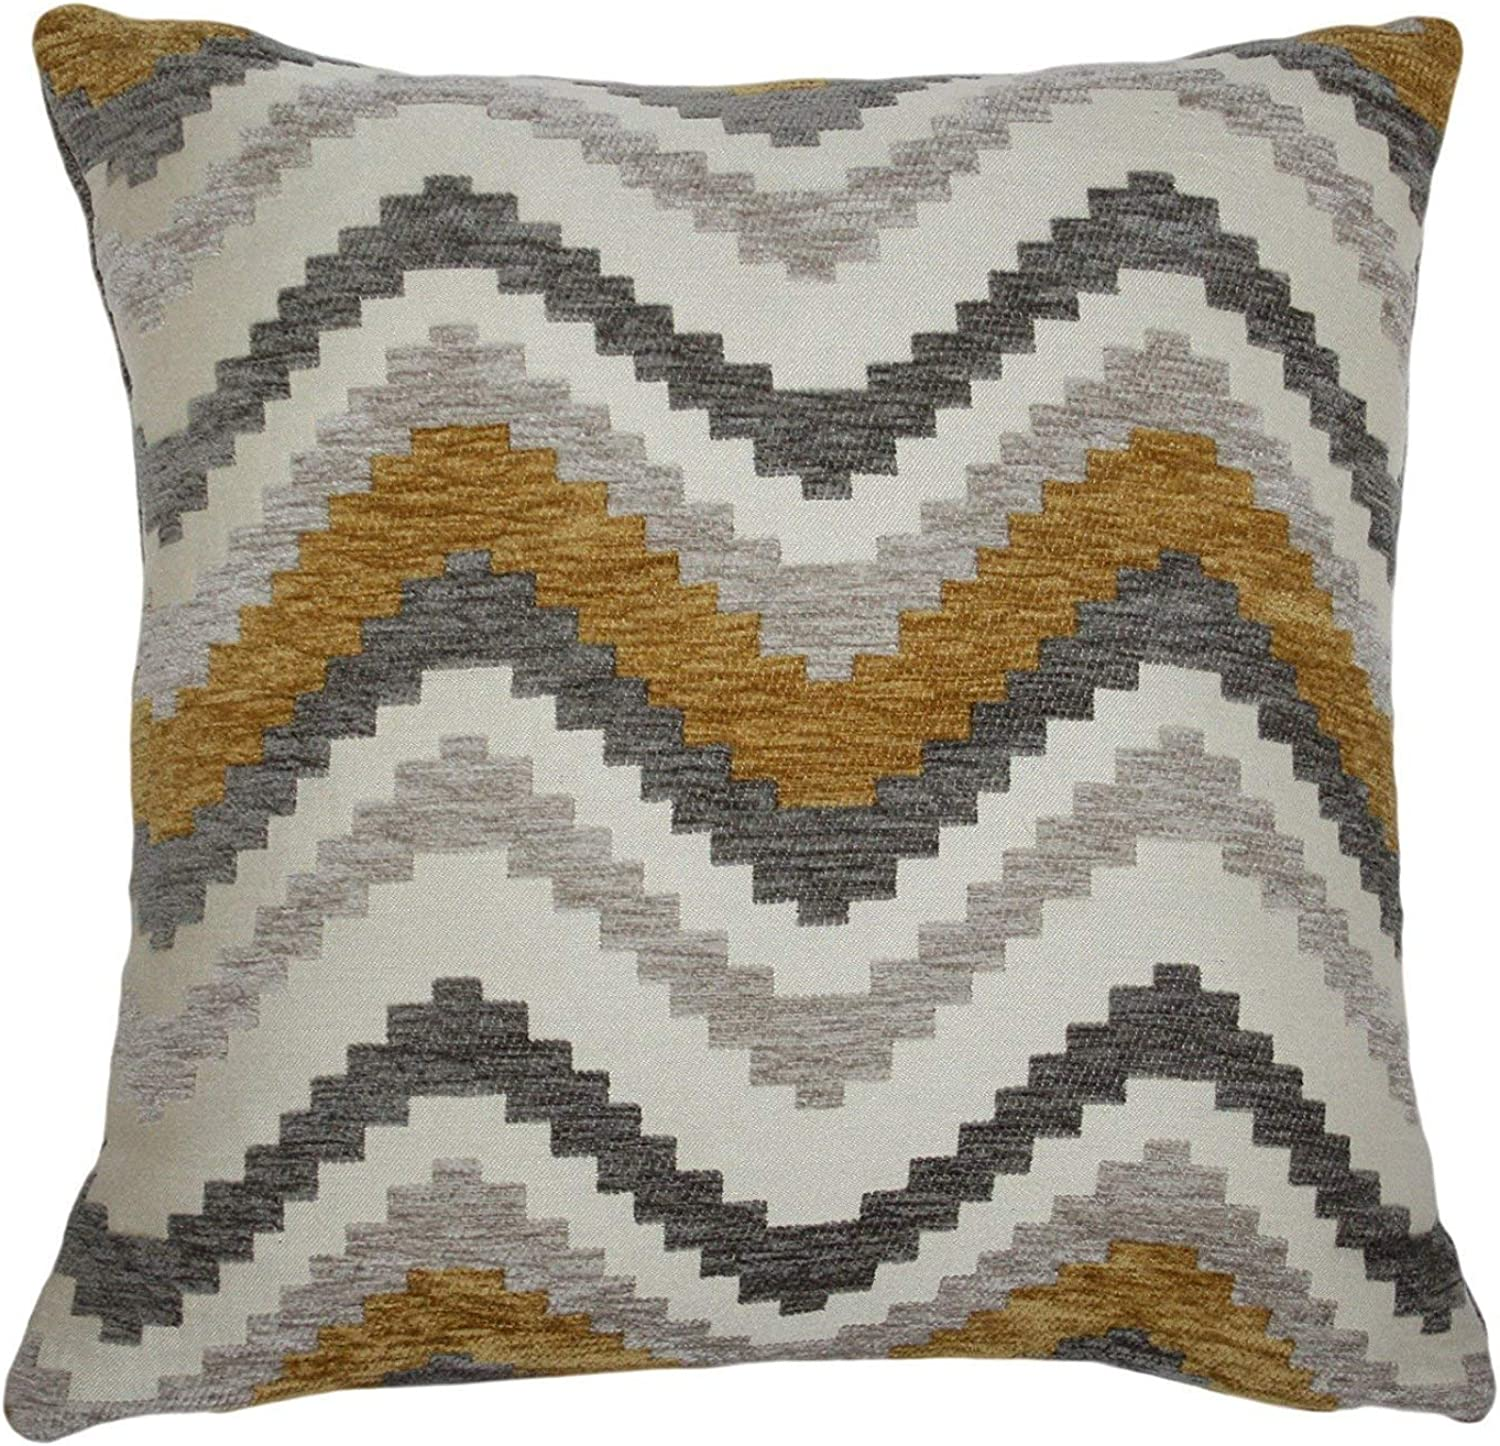 McAlister Textiles Navajo   Woven Pillow Cover Sham in Yellow & Grey   Square 20x20 Inches   Striped Zig Zag Chevron Aztec Decorative Zip Pillowcase Cushion Case Mgoldccan Boho Accent Decor